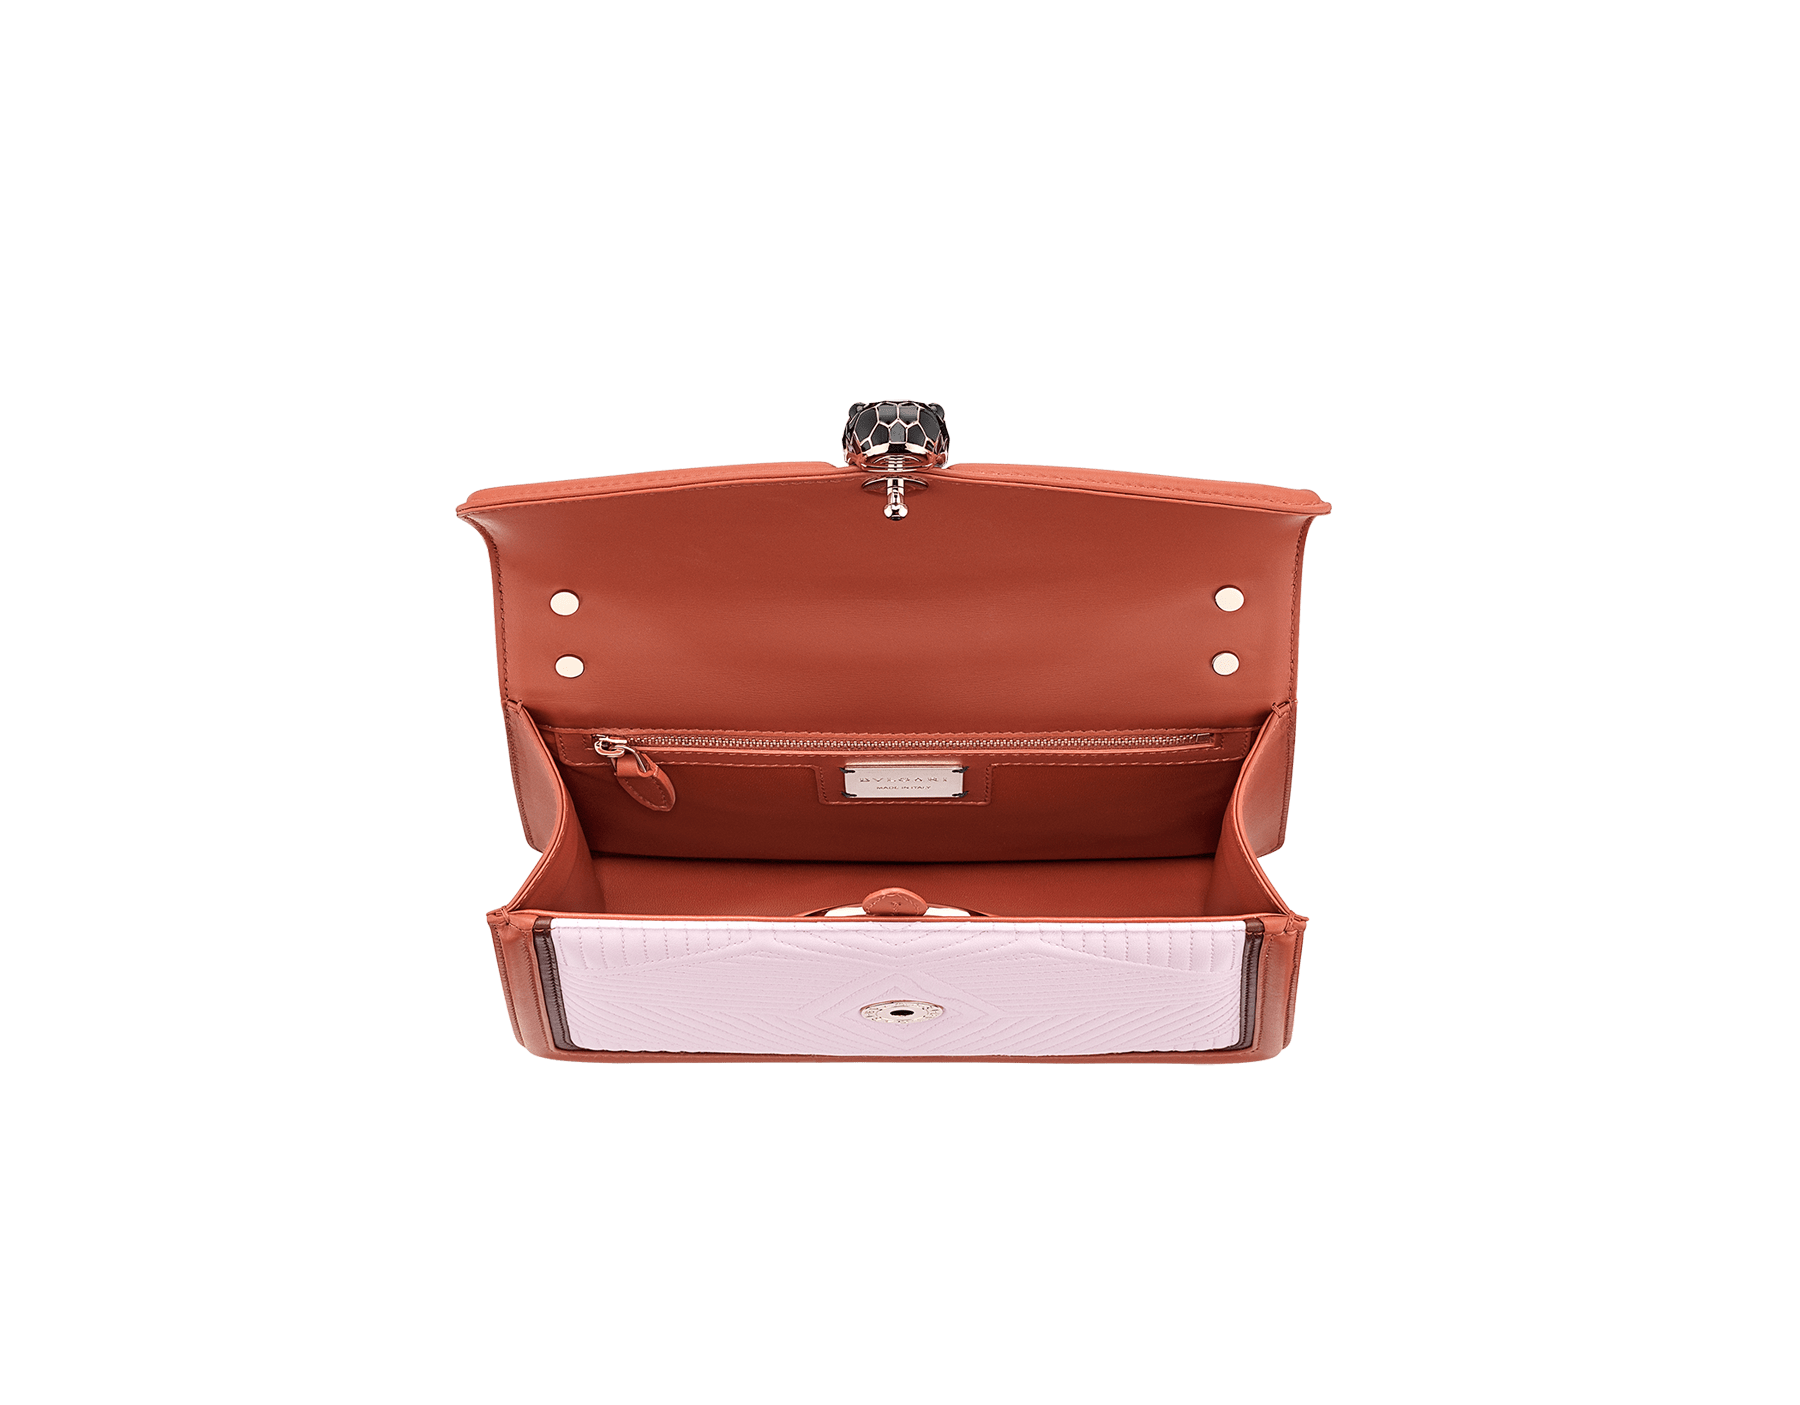 Serpenti Diamond Blast shoulder bag with rosa di francia quilted nappa leather body and imperial topaz and Roman garnet calf leather frames. Iconic snakehead closure in light gold plated brass embellished with Roman garnet and black enamel and black onyx eyes. 288829 image 4